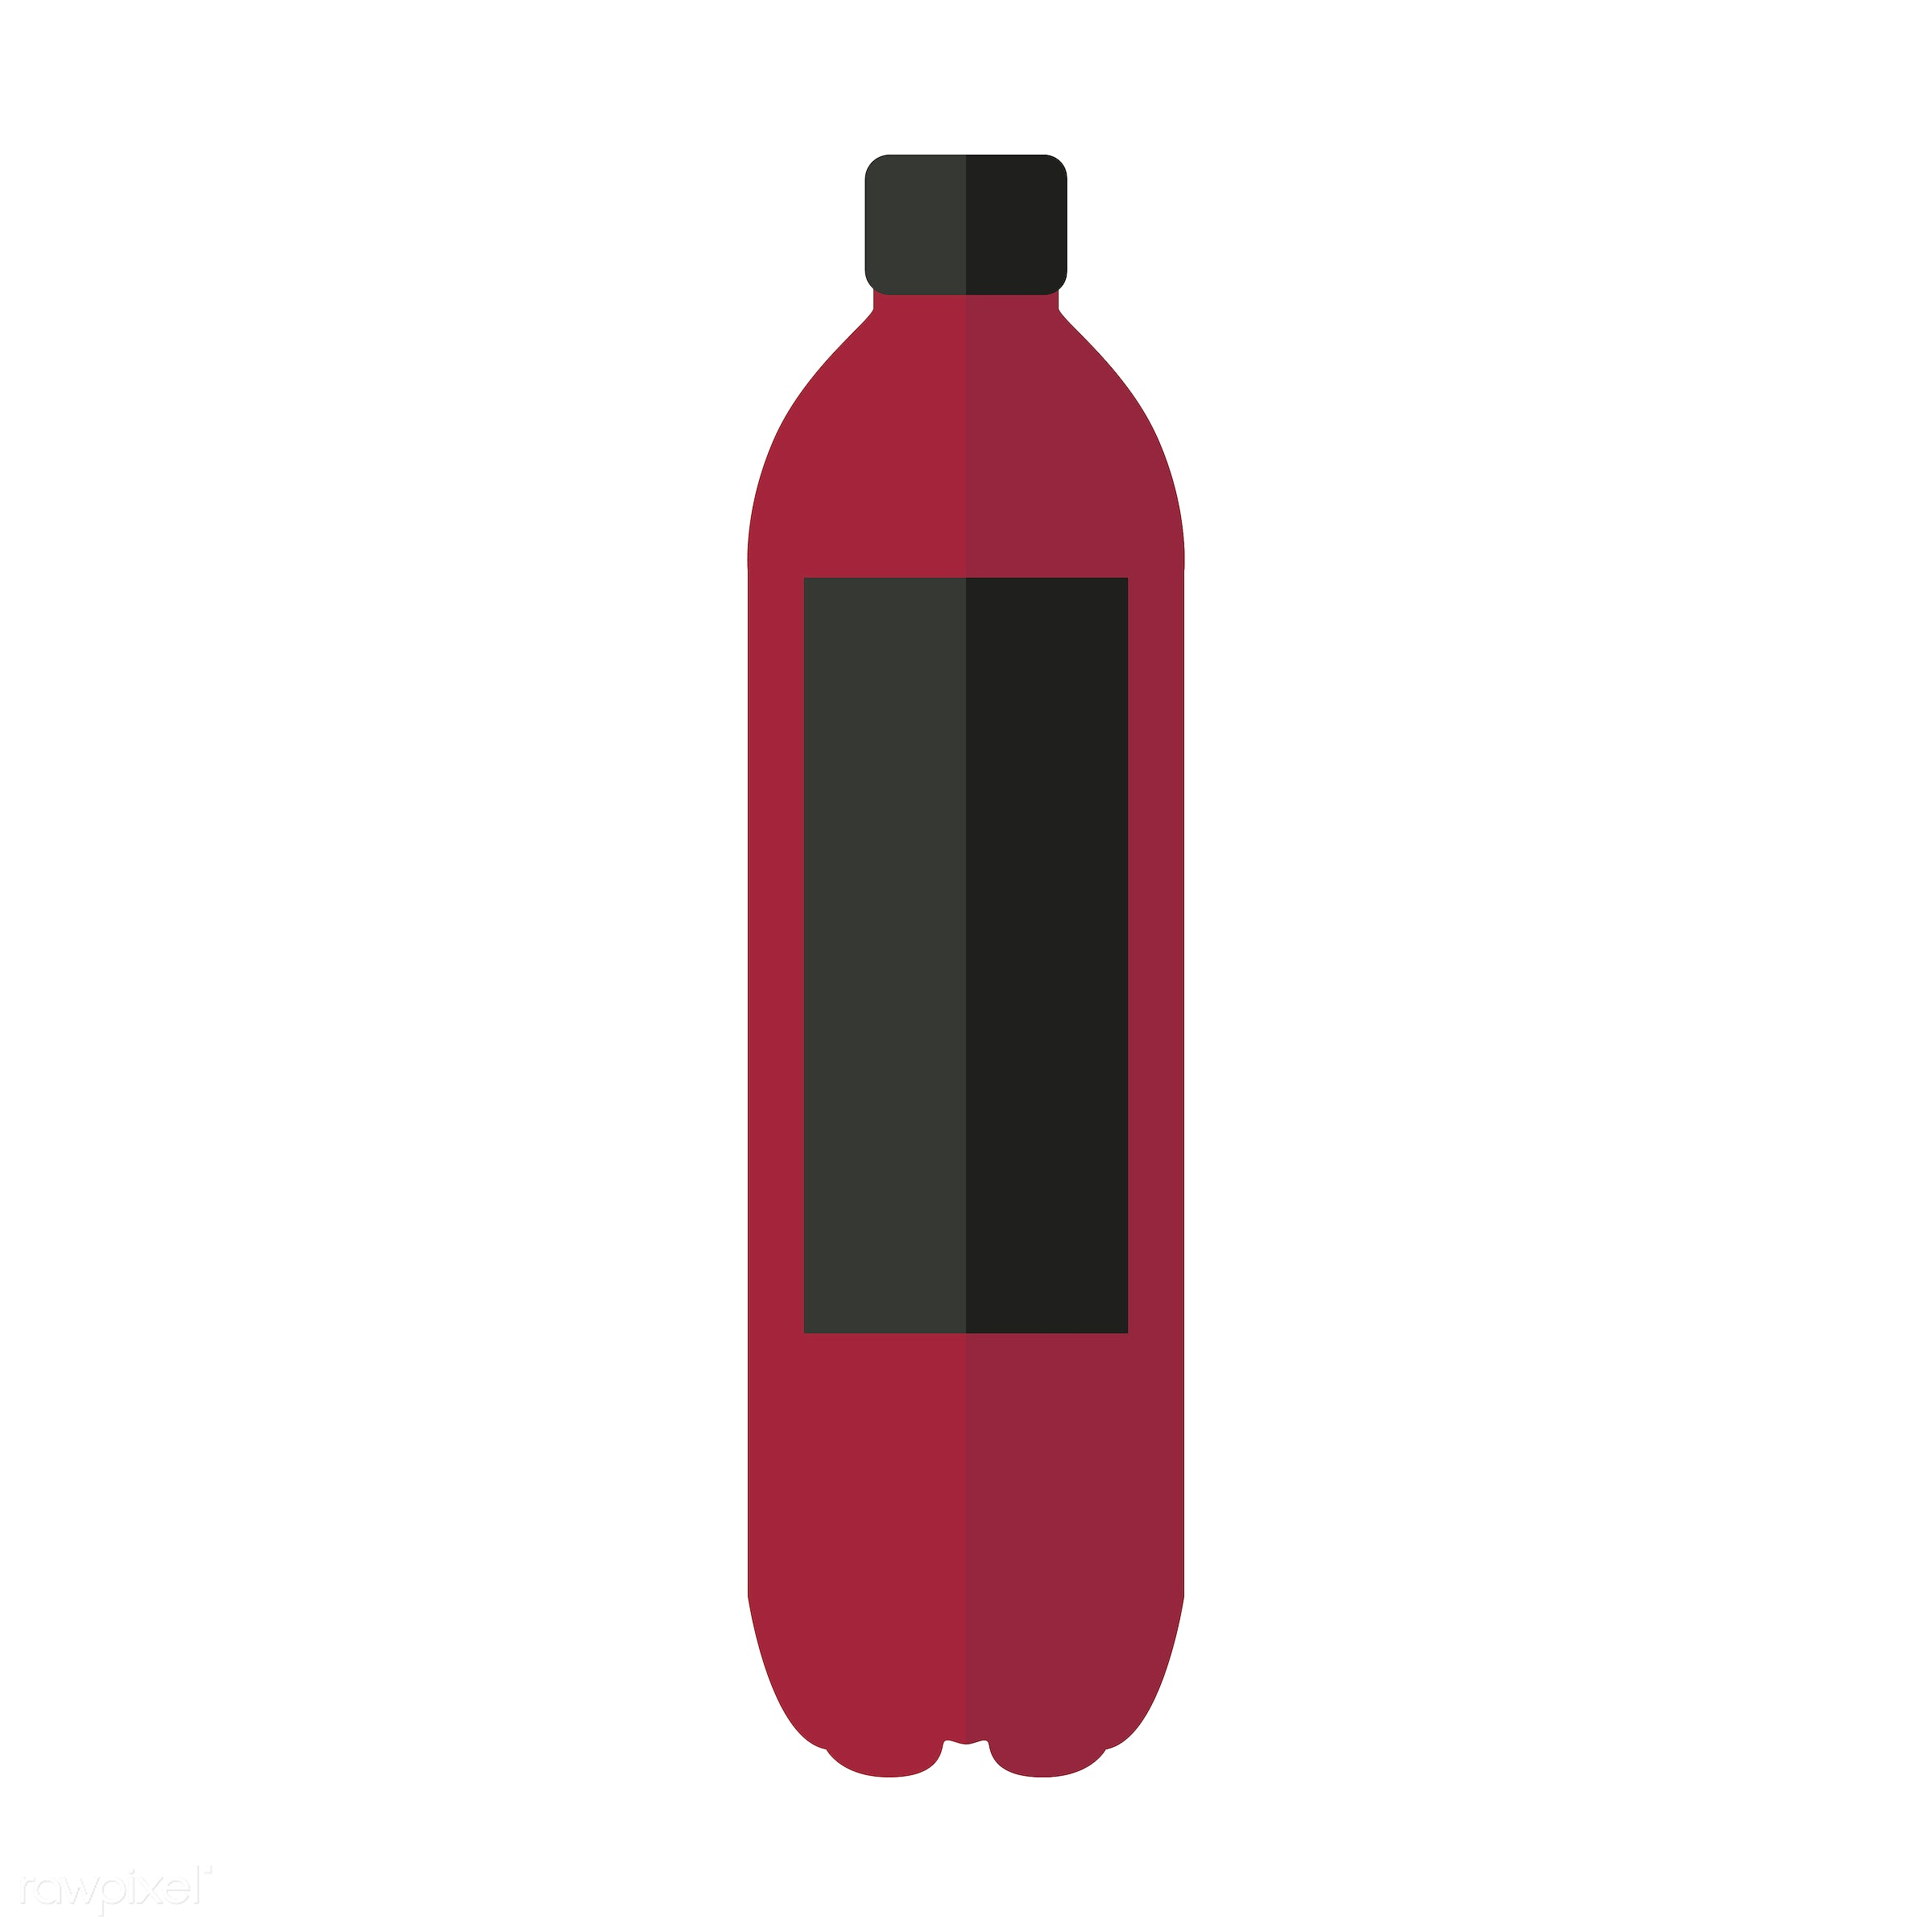 vector, graphic, illustration, icon, symbol, colorful, cute, drink, beverage, water, red, black, plastic bottle, sports drink